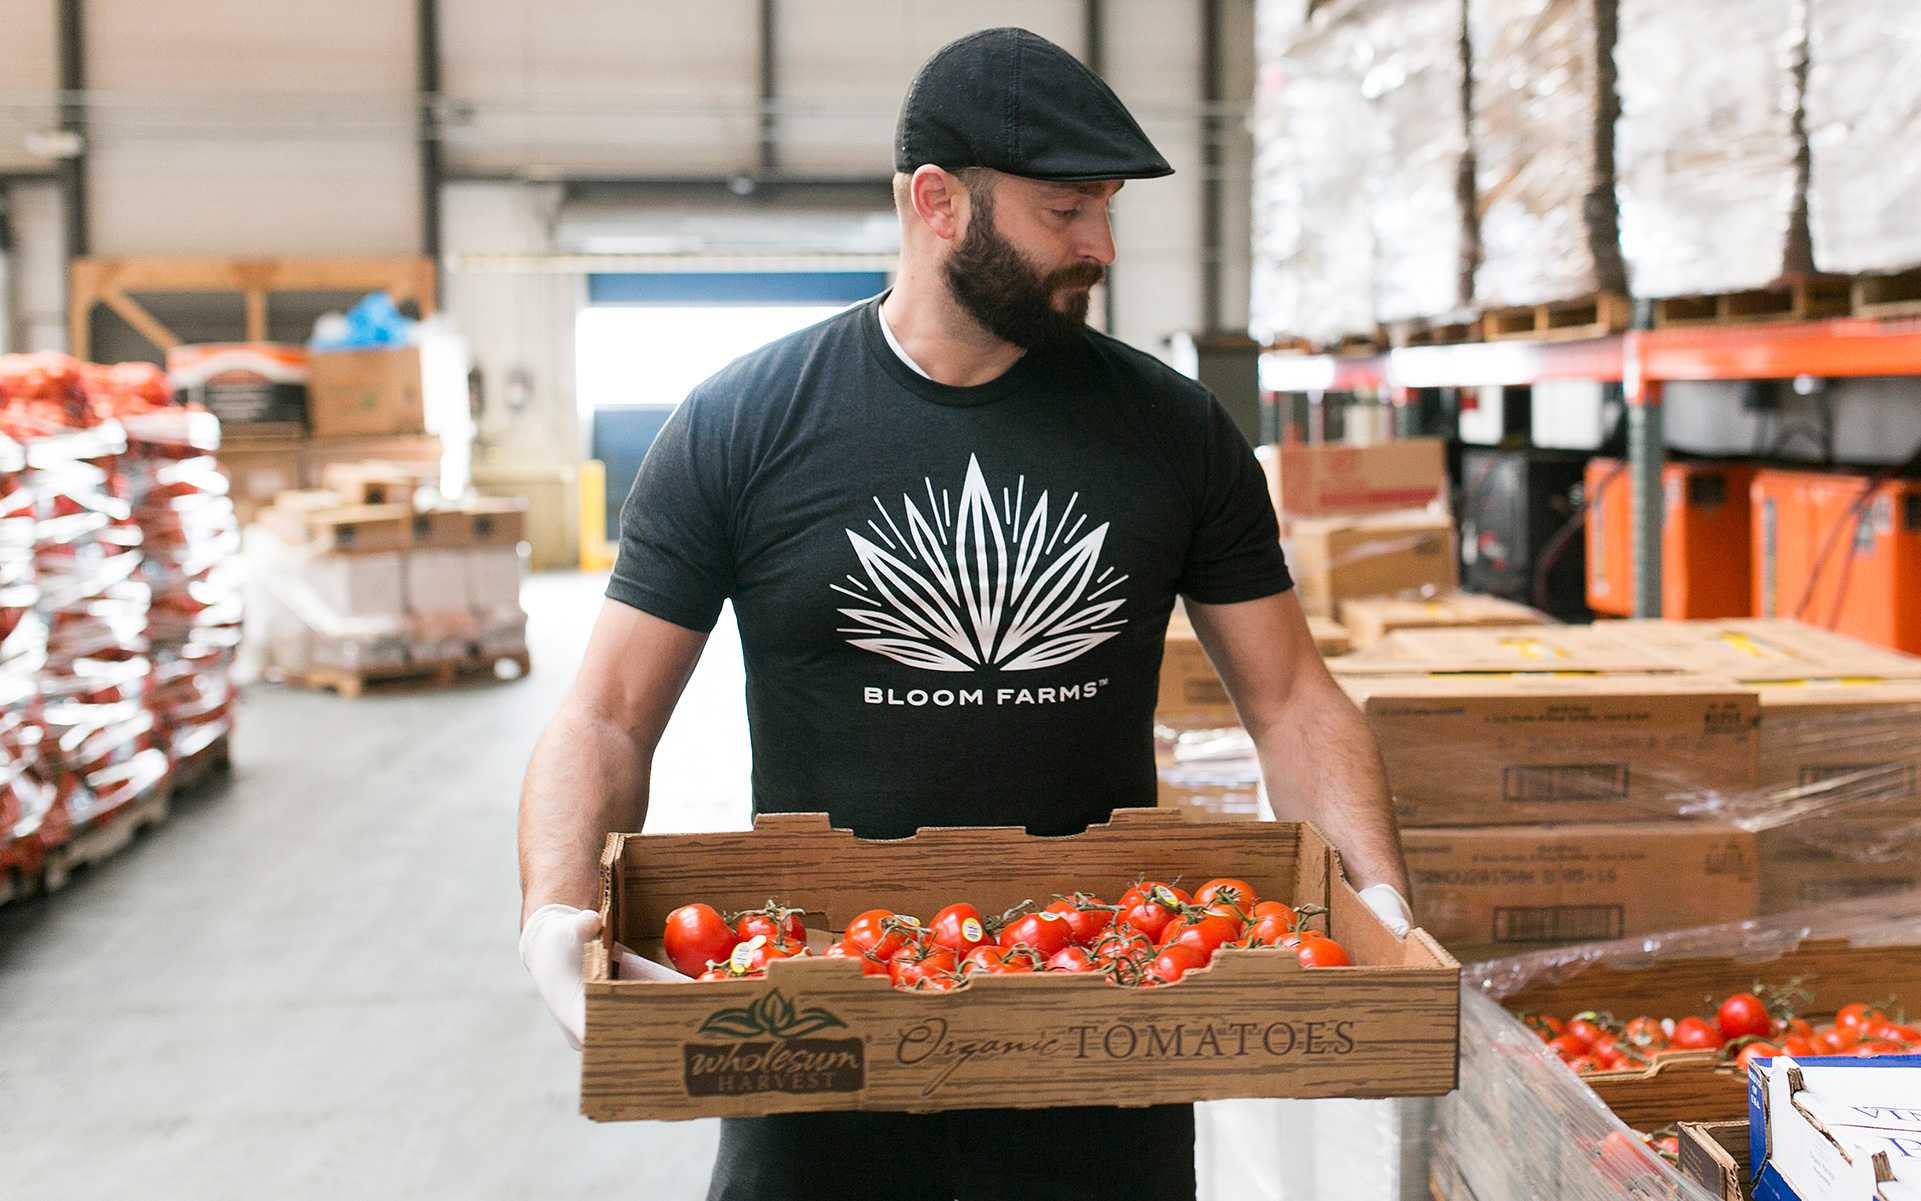 Bloom Farm's Michael Ray has donated one million meals to California food banks. (Courtesy of Kelly Ginn)